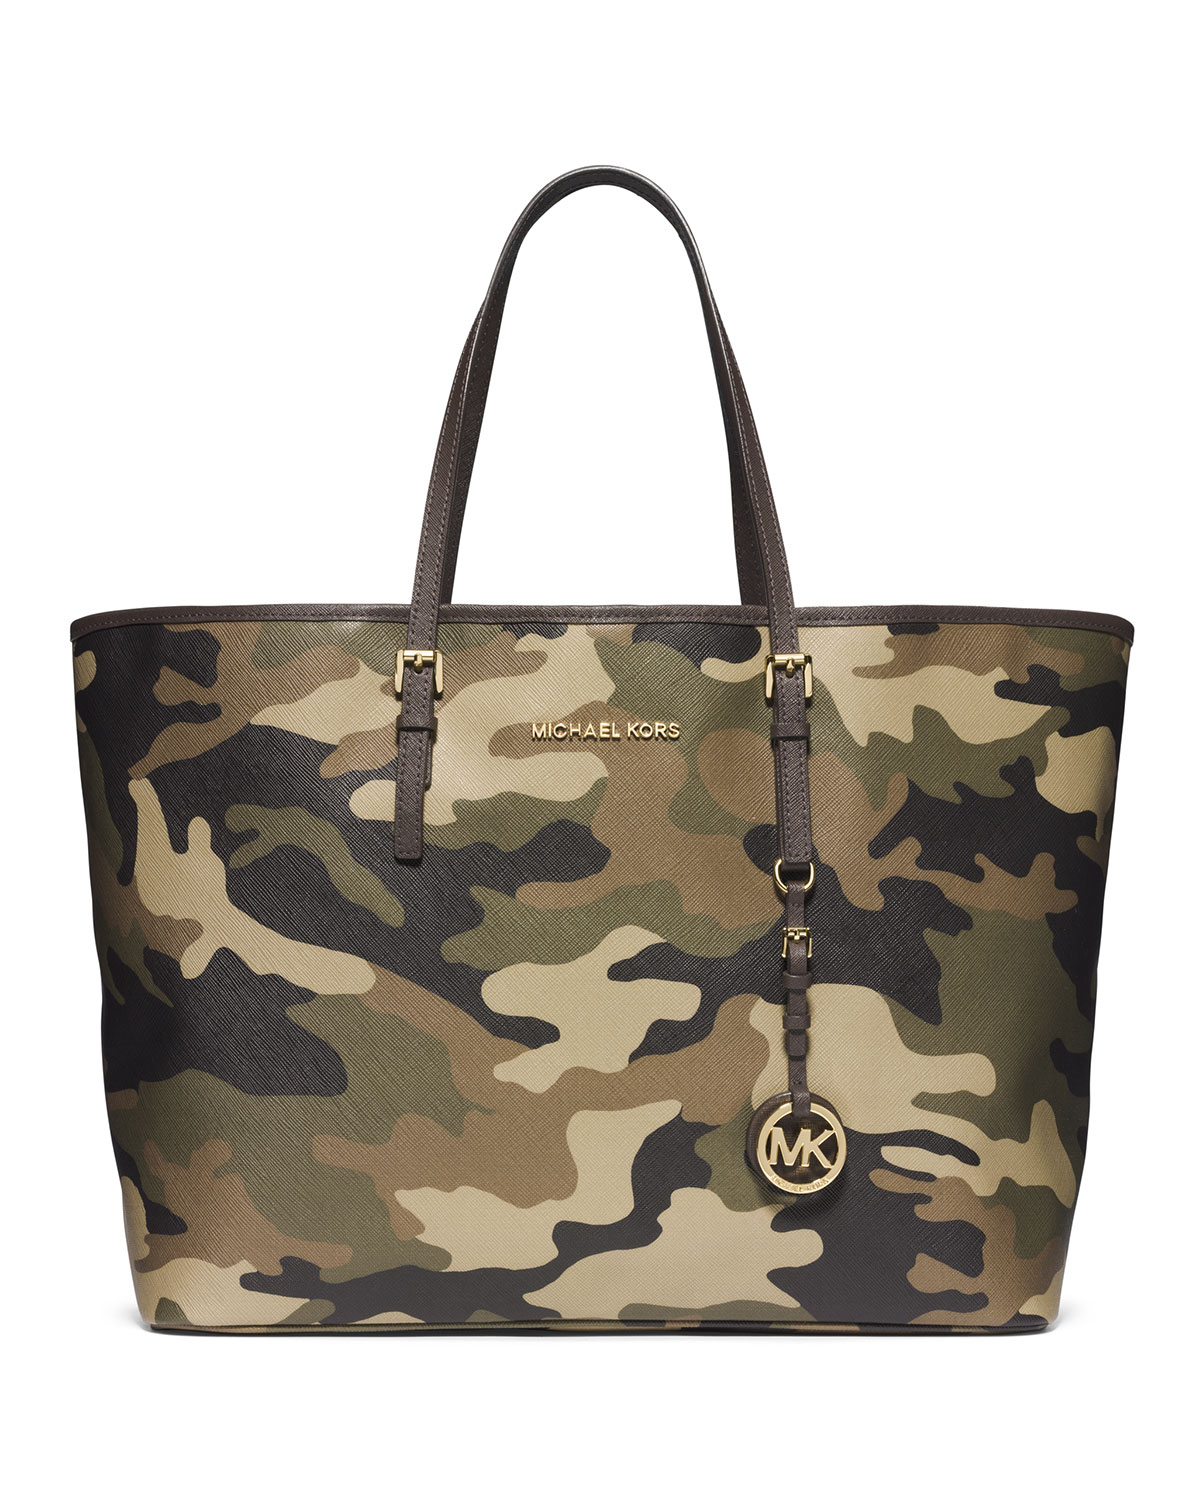 51b4b29ad026 Michael Kors Michael Medium Jet Set Camo Travel Tote in Green - Lyst